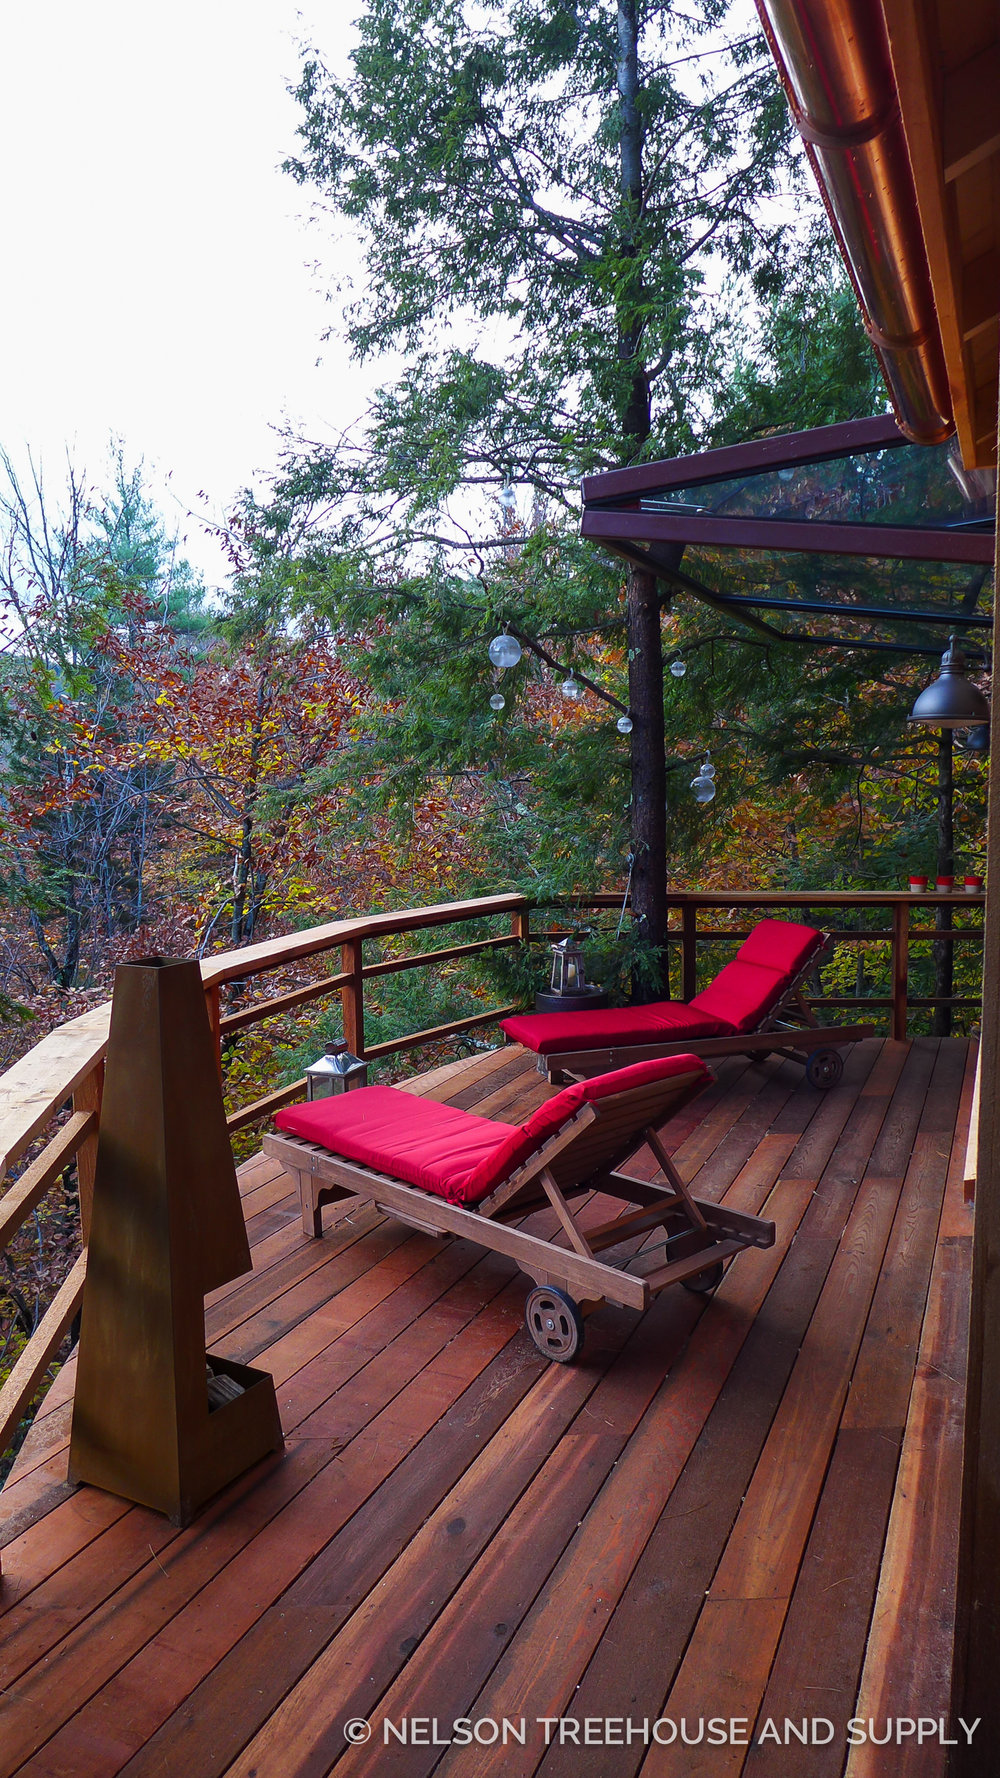 Maine Nelson Treehouse and Supply